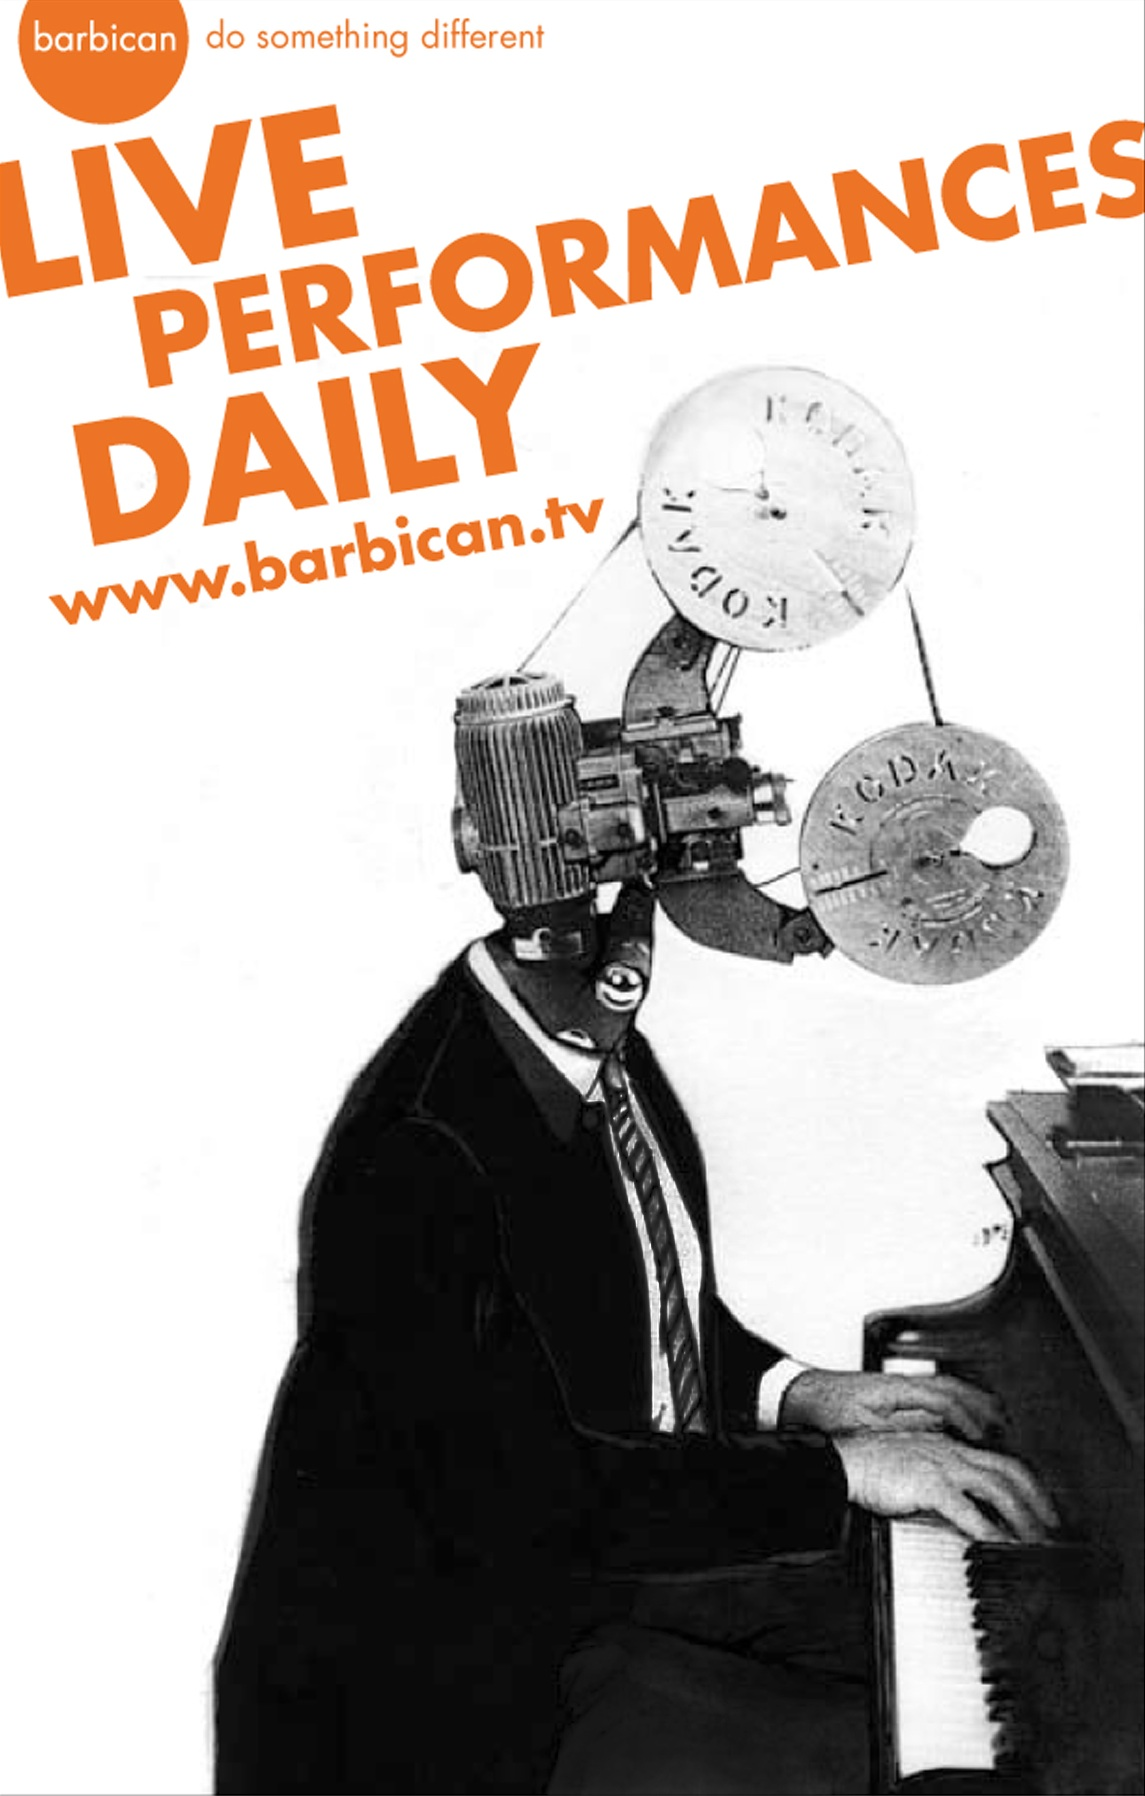 The Barbican TV - Live Performances Daily poster illustration